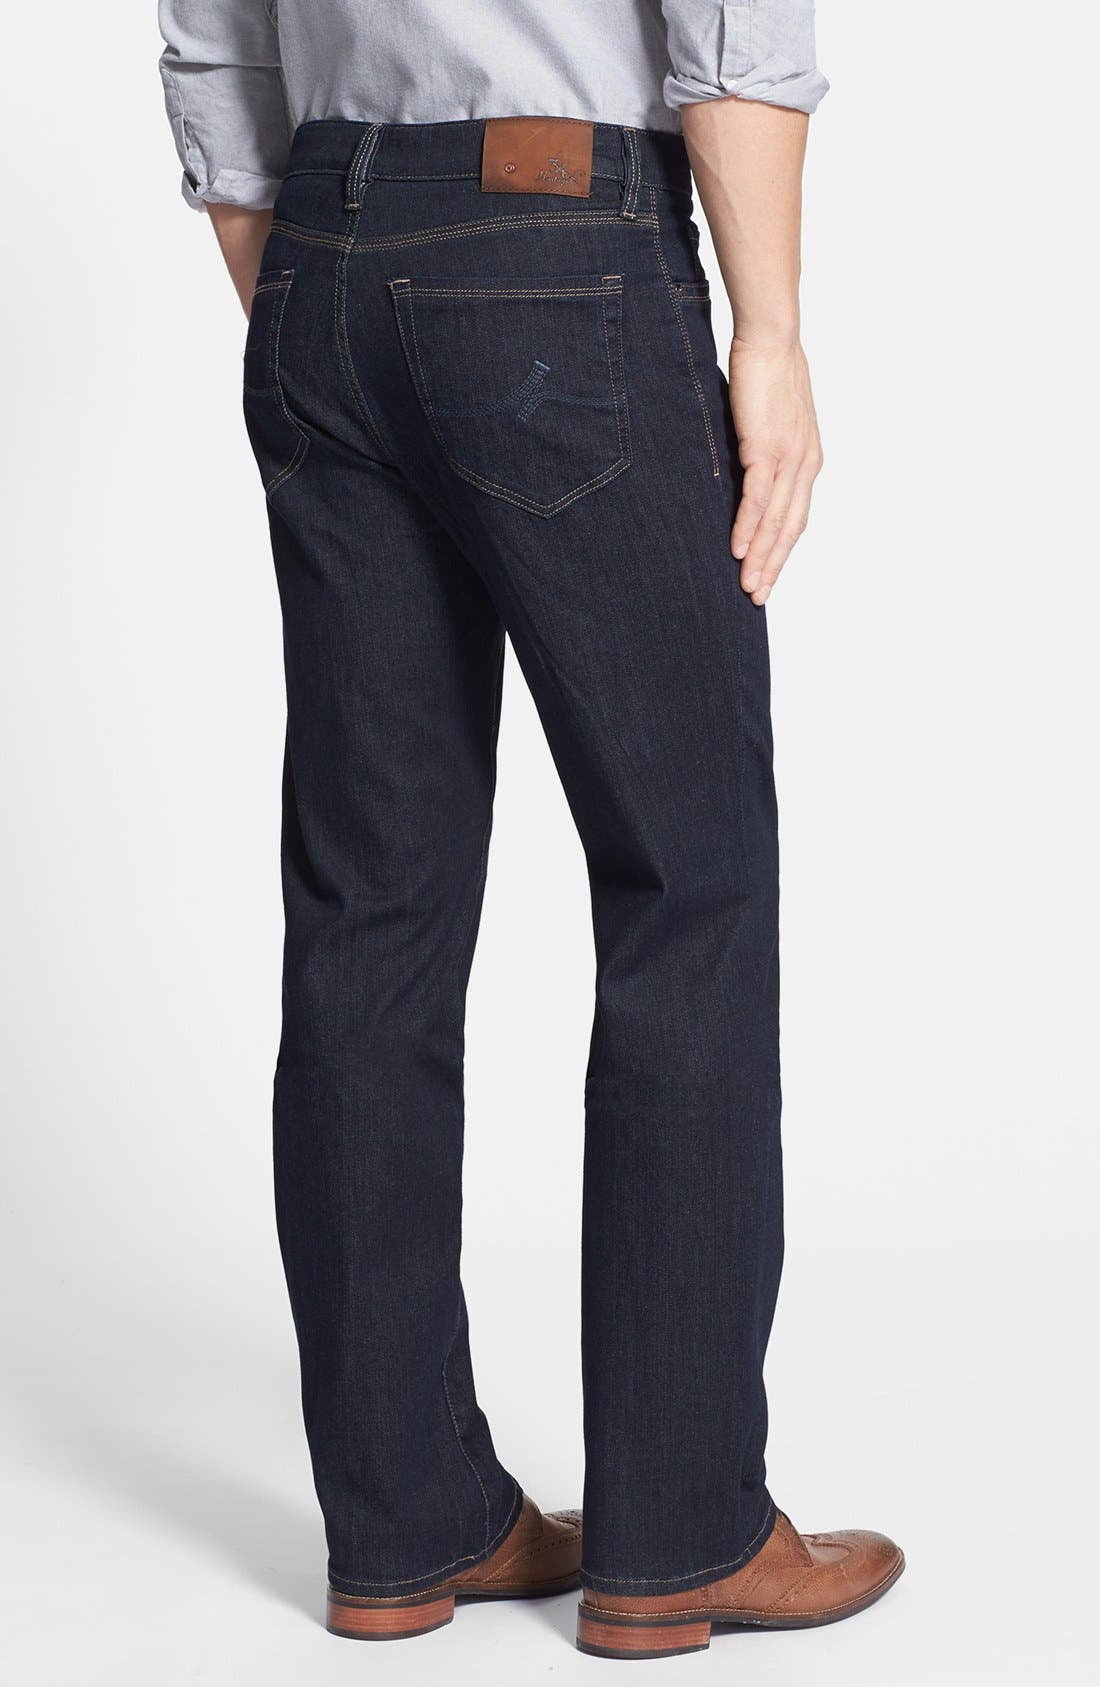 'Charisma' Classic Relaxed Fit Jeans,                             Alternate thumbnail 2, color,                             Midnight Cashmere